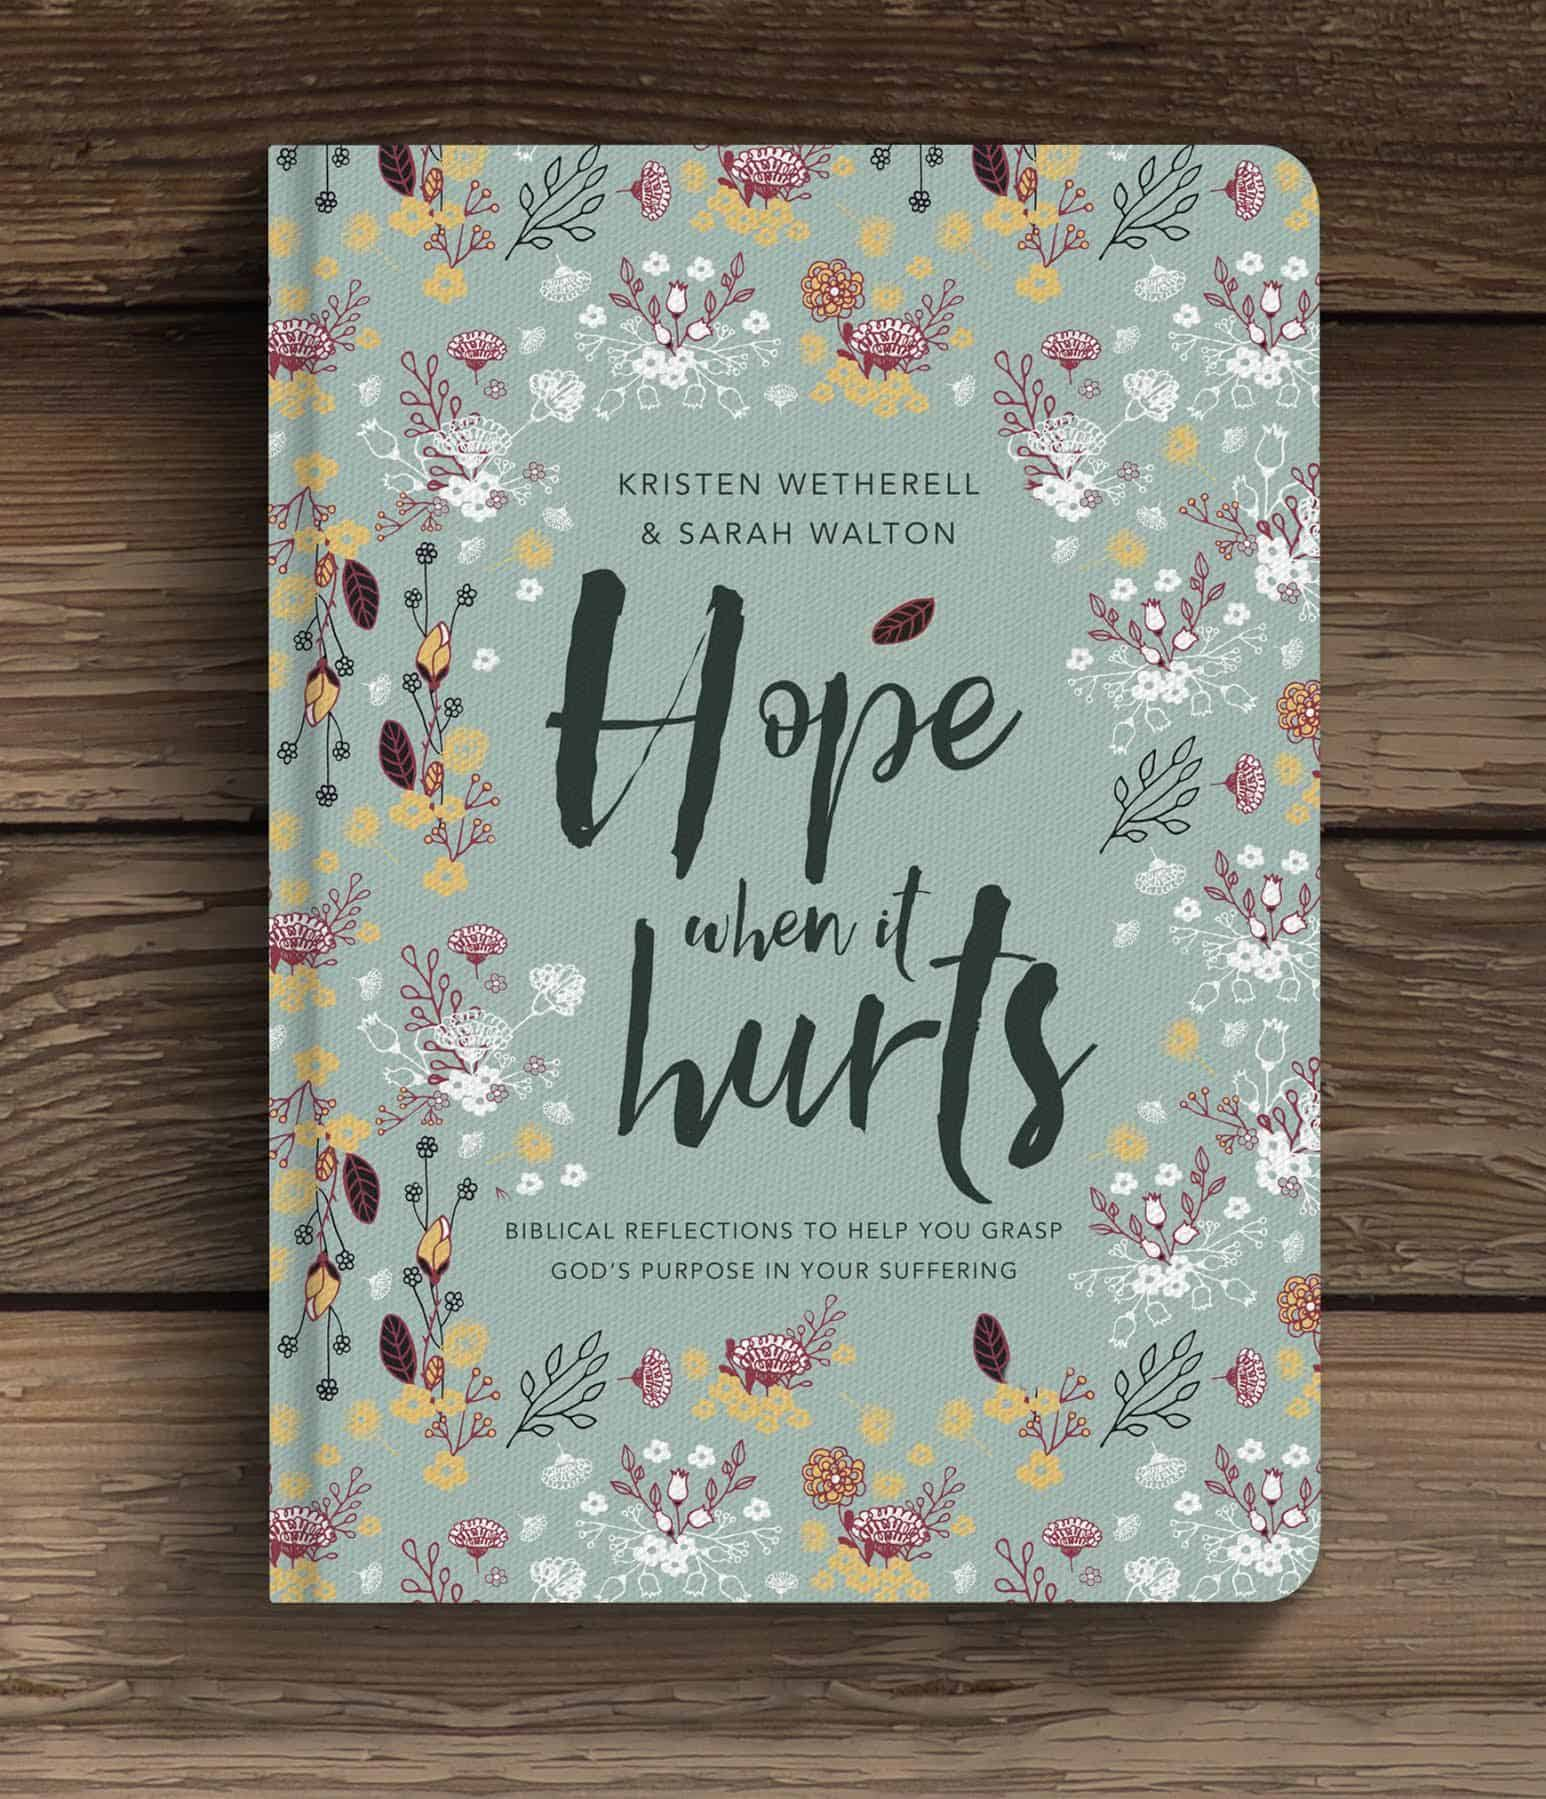 Hope, Episode 80- Kristen Wetherell and Sarah Walton– Hope When It Hurts – Biblical Reflections to Help You Grasp God's Purpose in Your Suffering, Servants of Grace, Servants of Grace